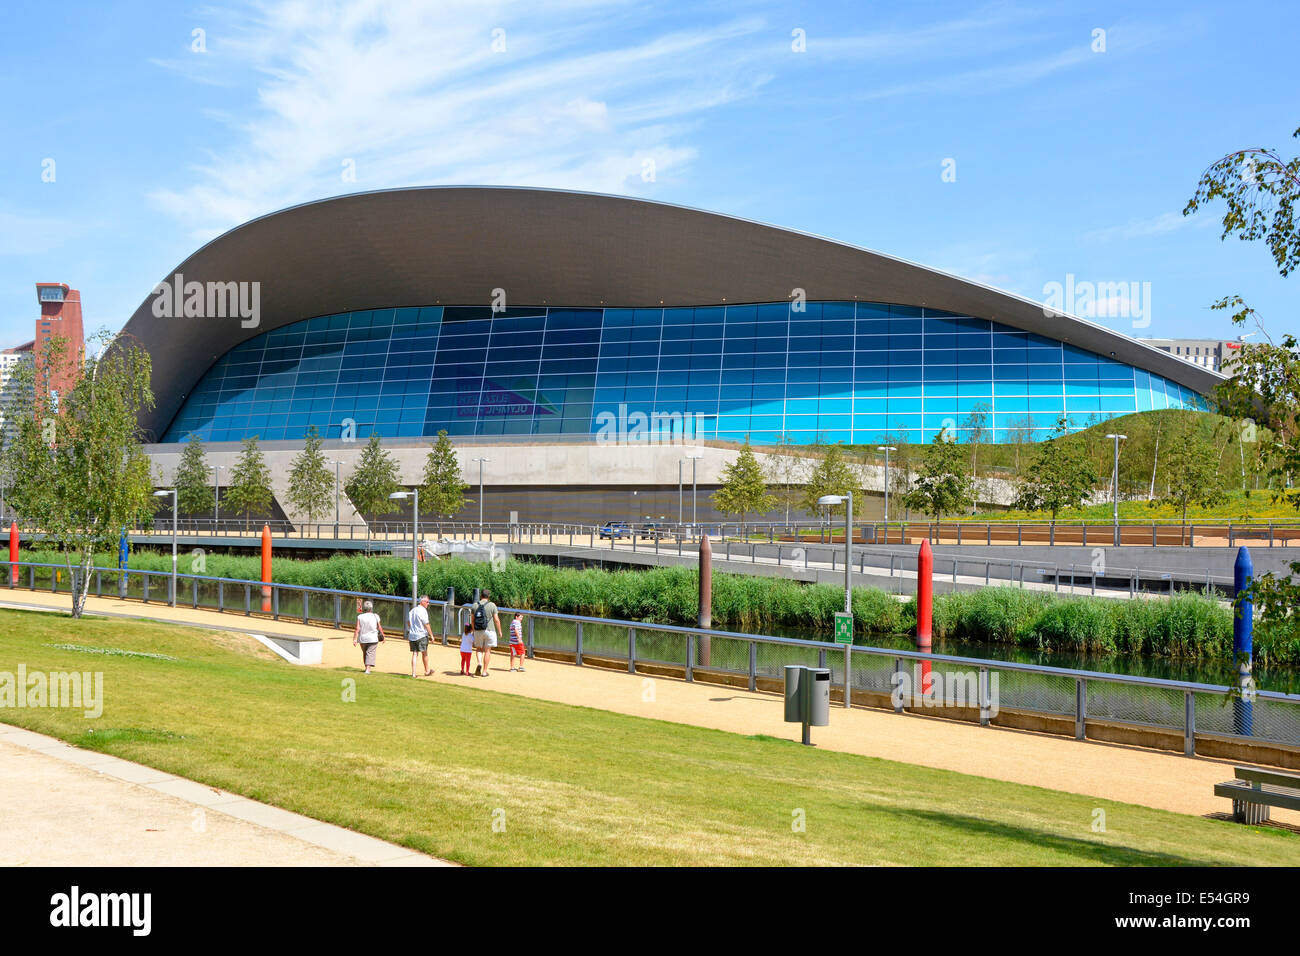 Family swimming pool uk stock photos family swimming - Queen elizabeth olympic park swimming pool ...